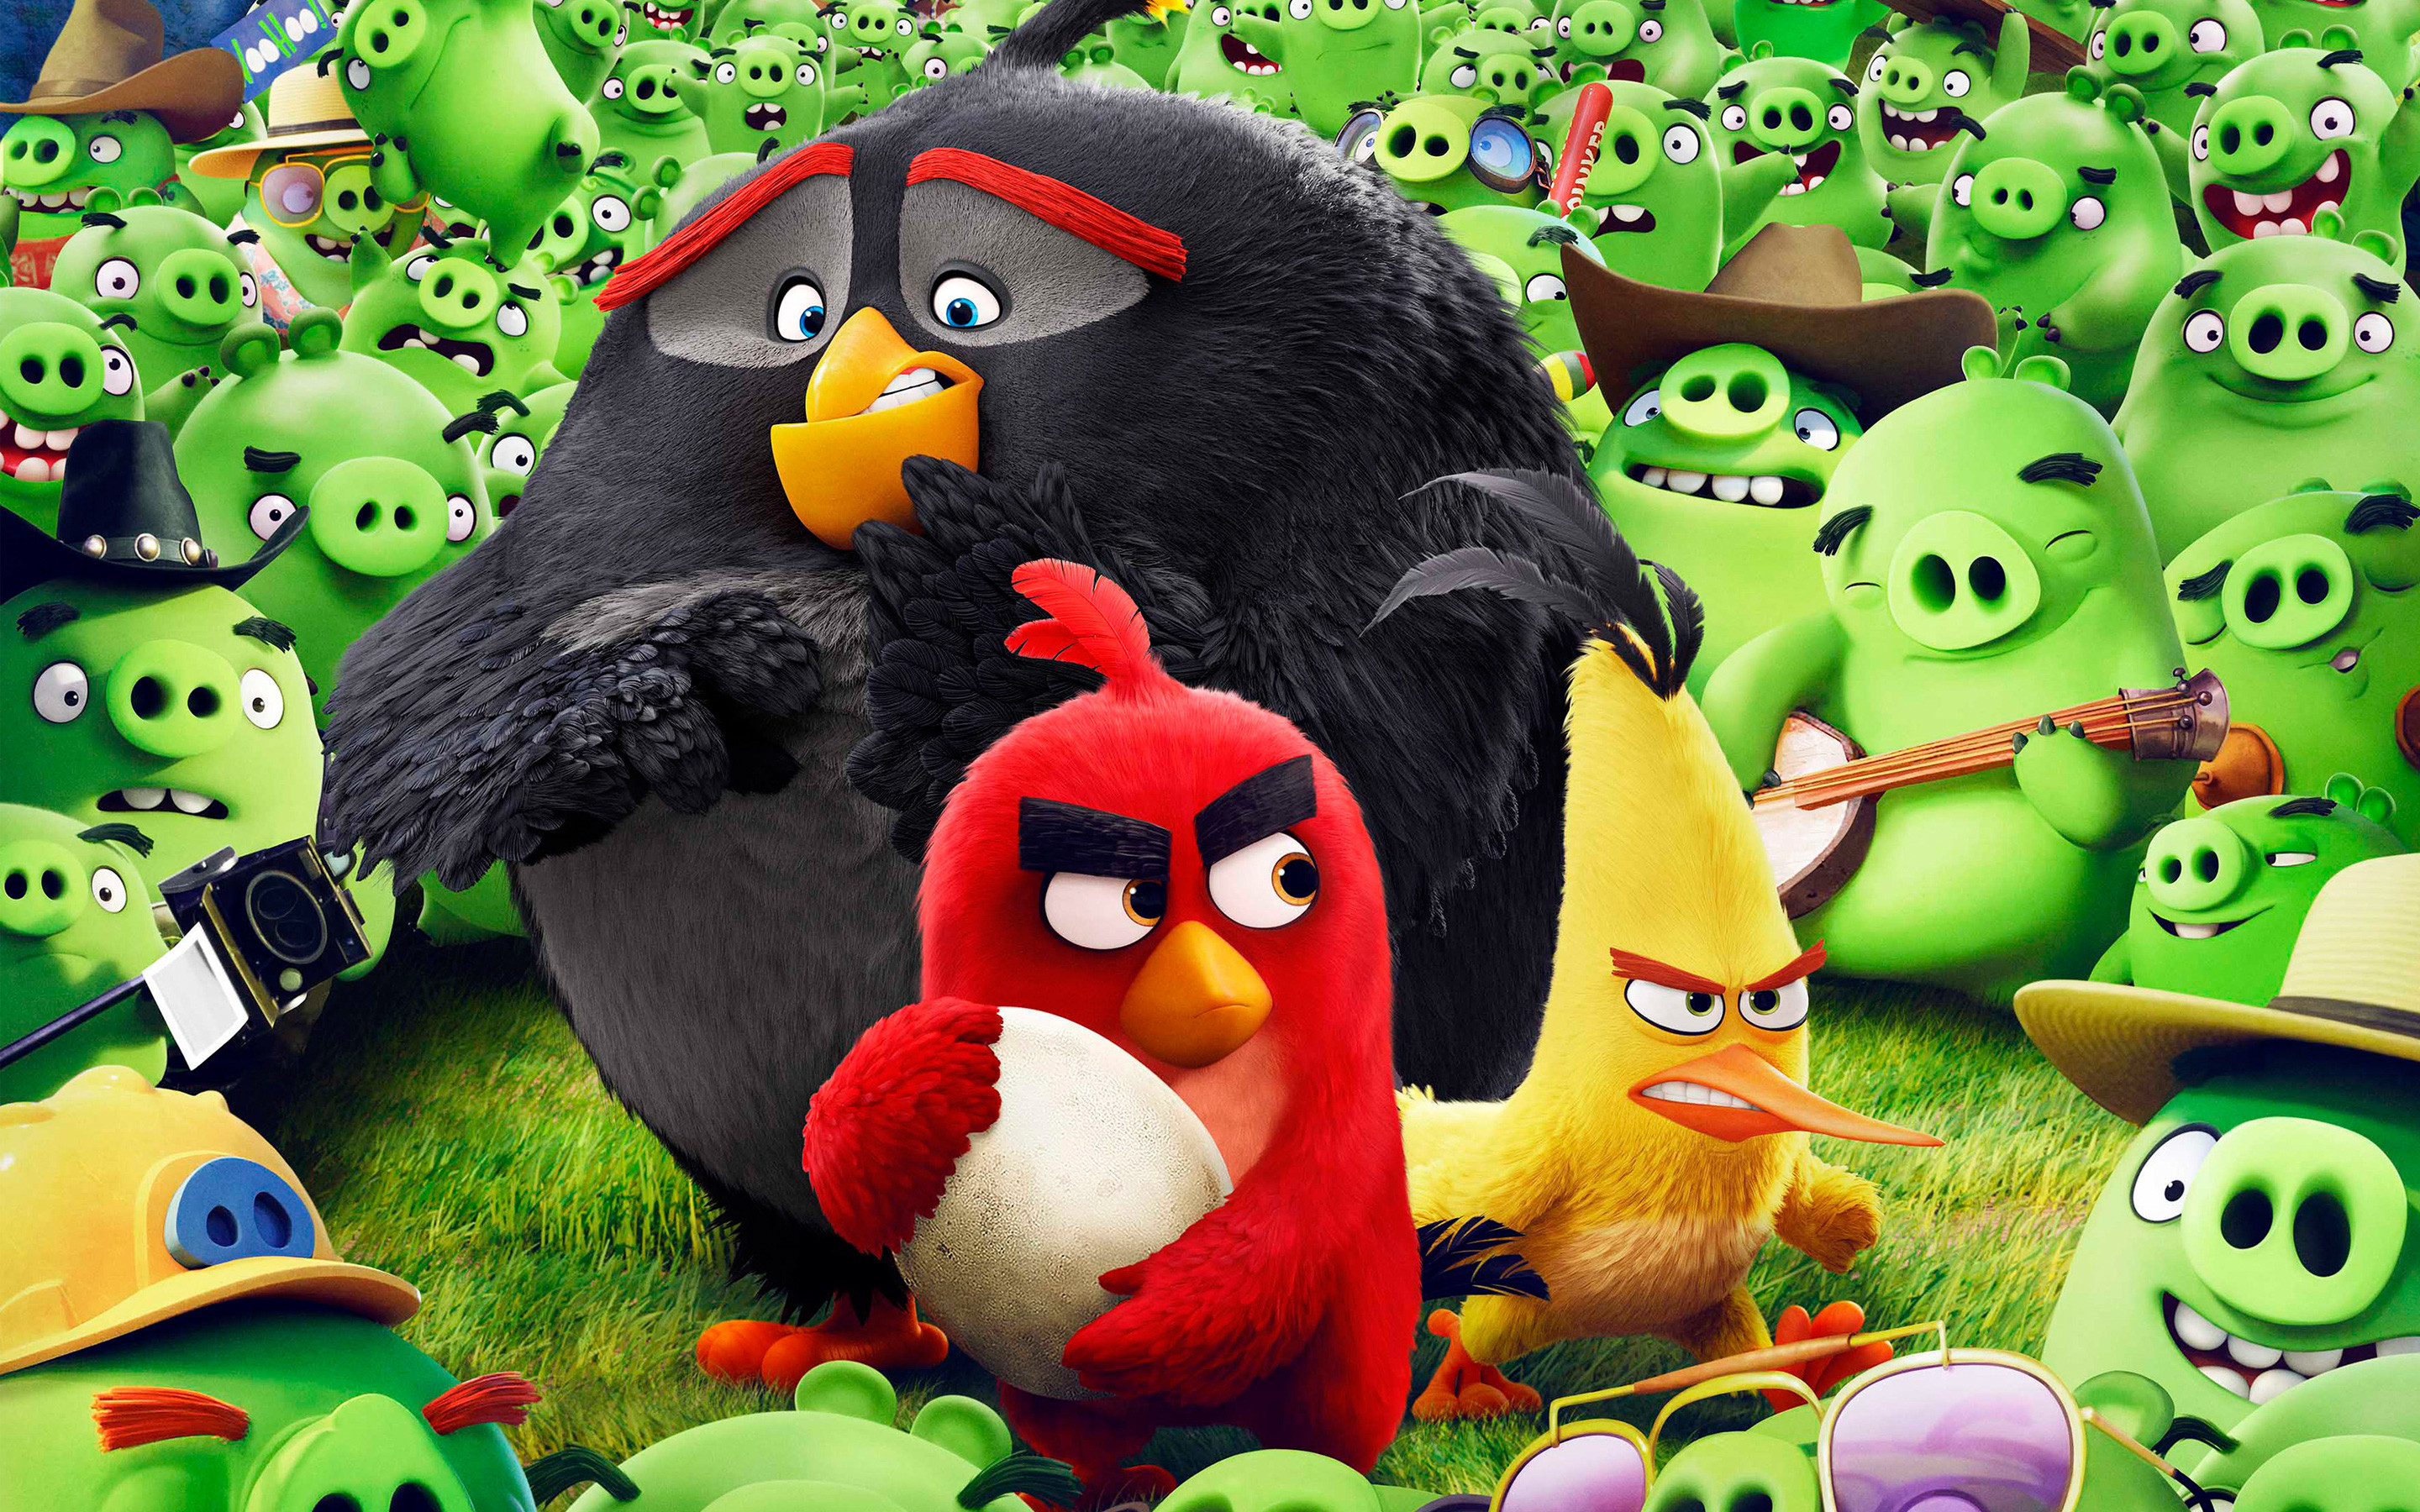 Res: 2880x1800, Angry Birds Animation Movie HD Wallpaper.